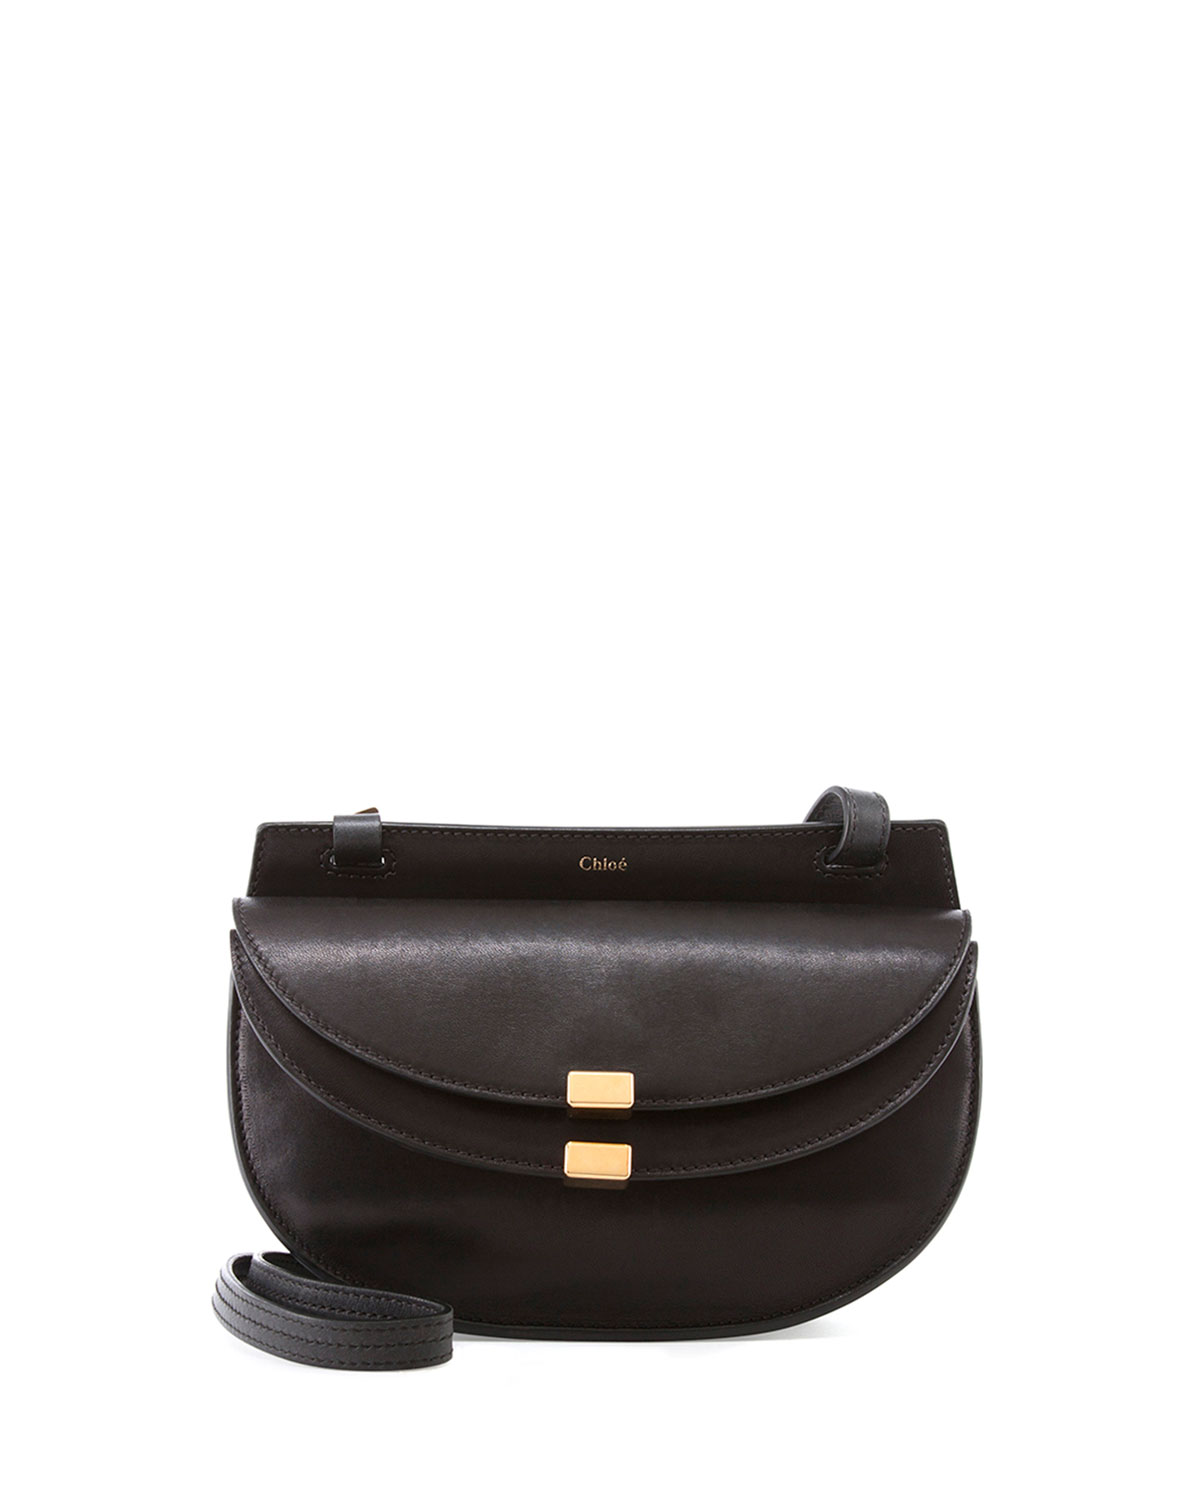 4f99b797f9 Georgia Mini Leather Crossbody Bag, Black